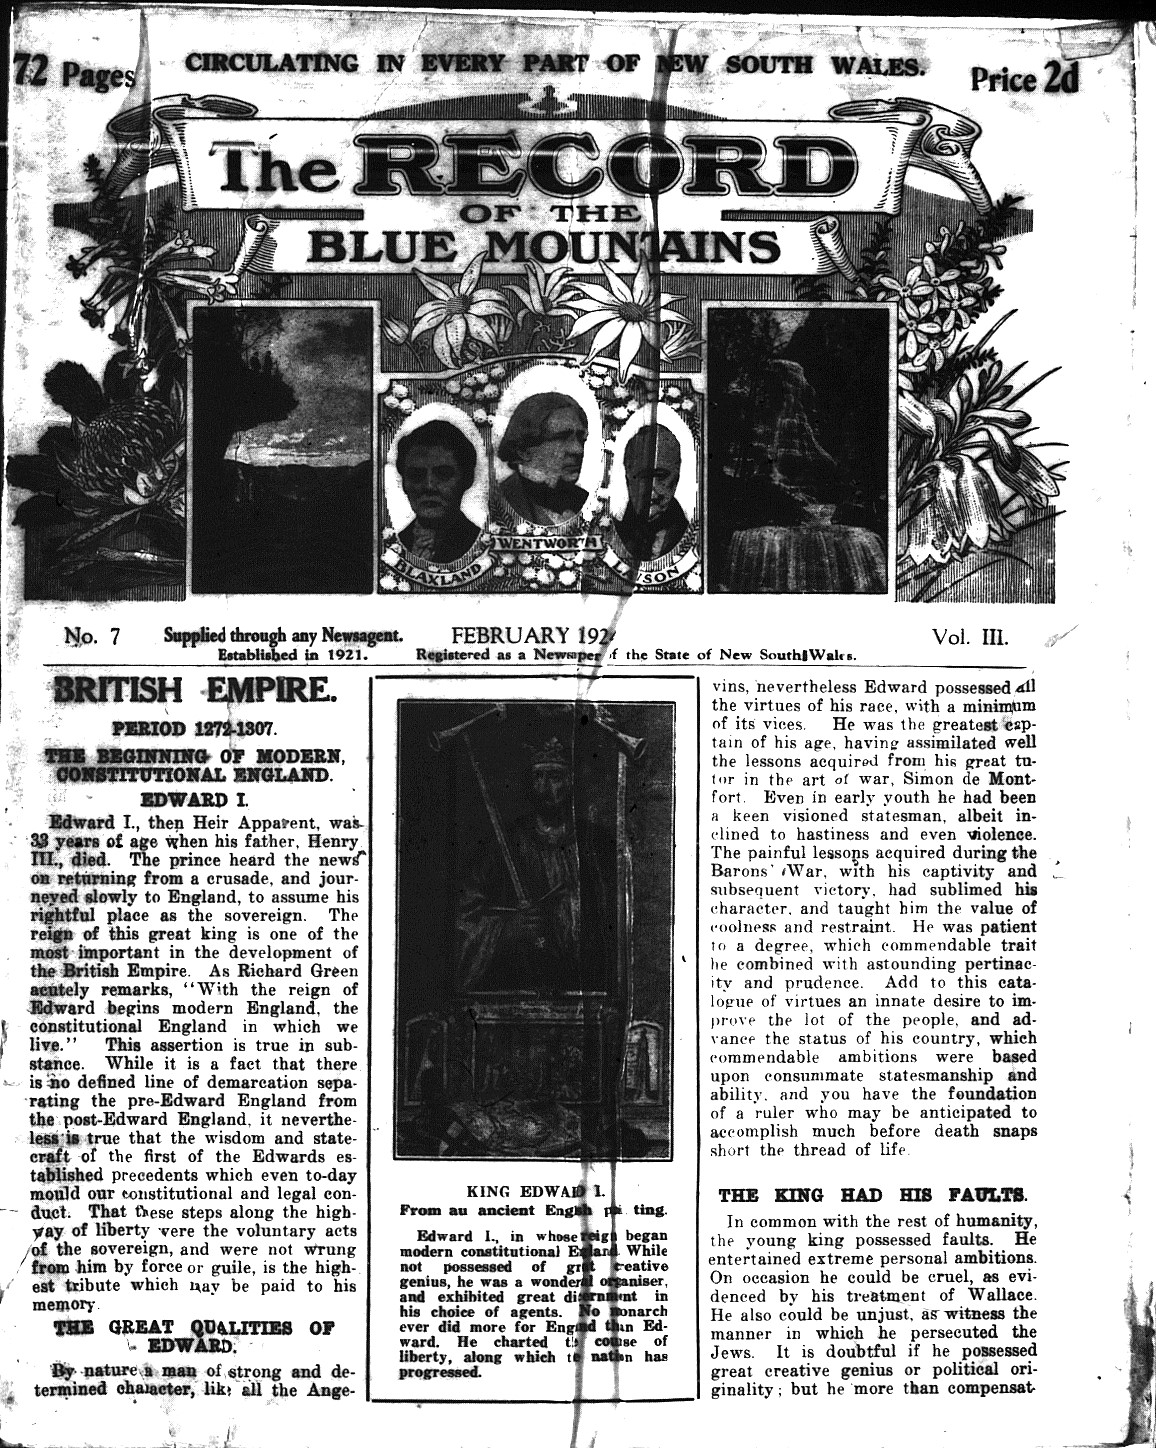 The Record of the Blue Mountains